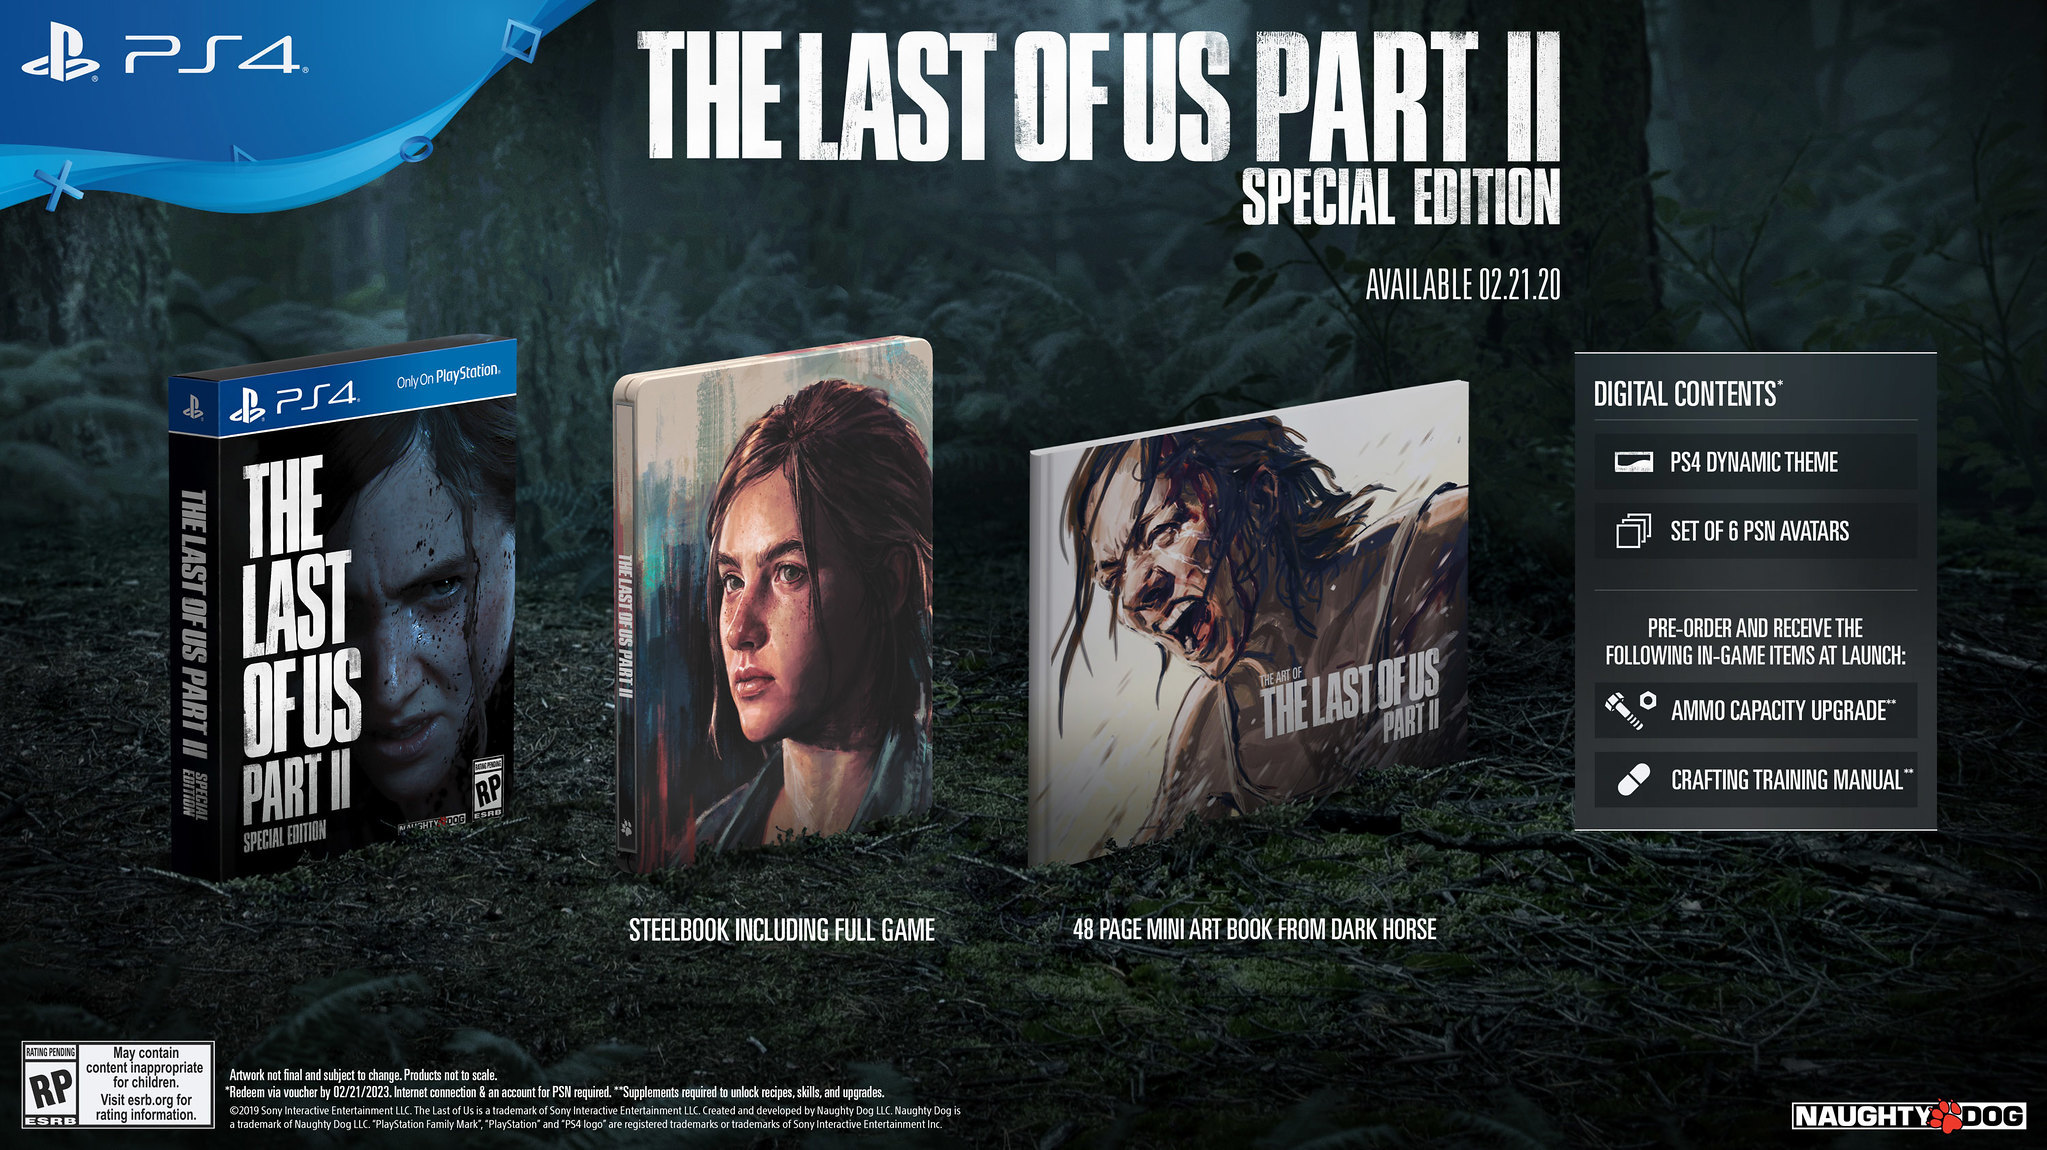 The Last of Us Part II Release Date, COVID-19 Delay and Game Trailer